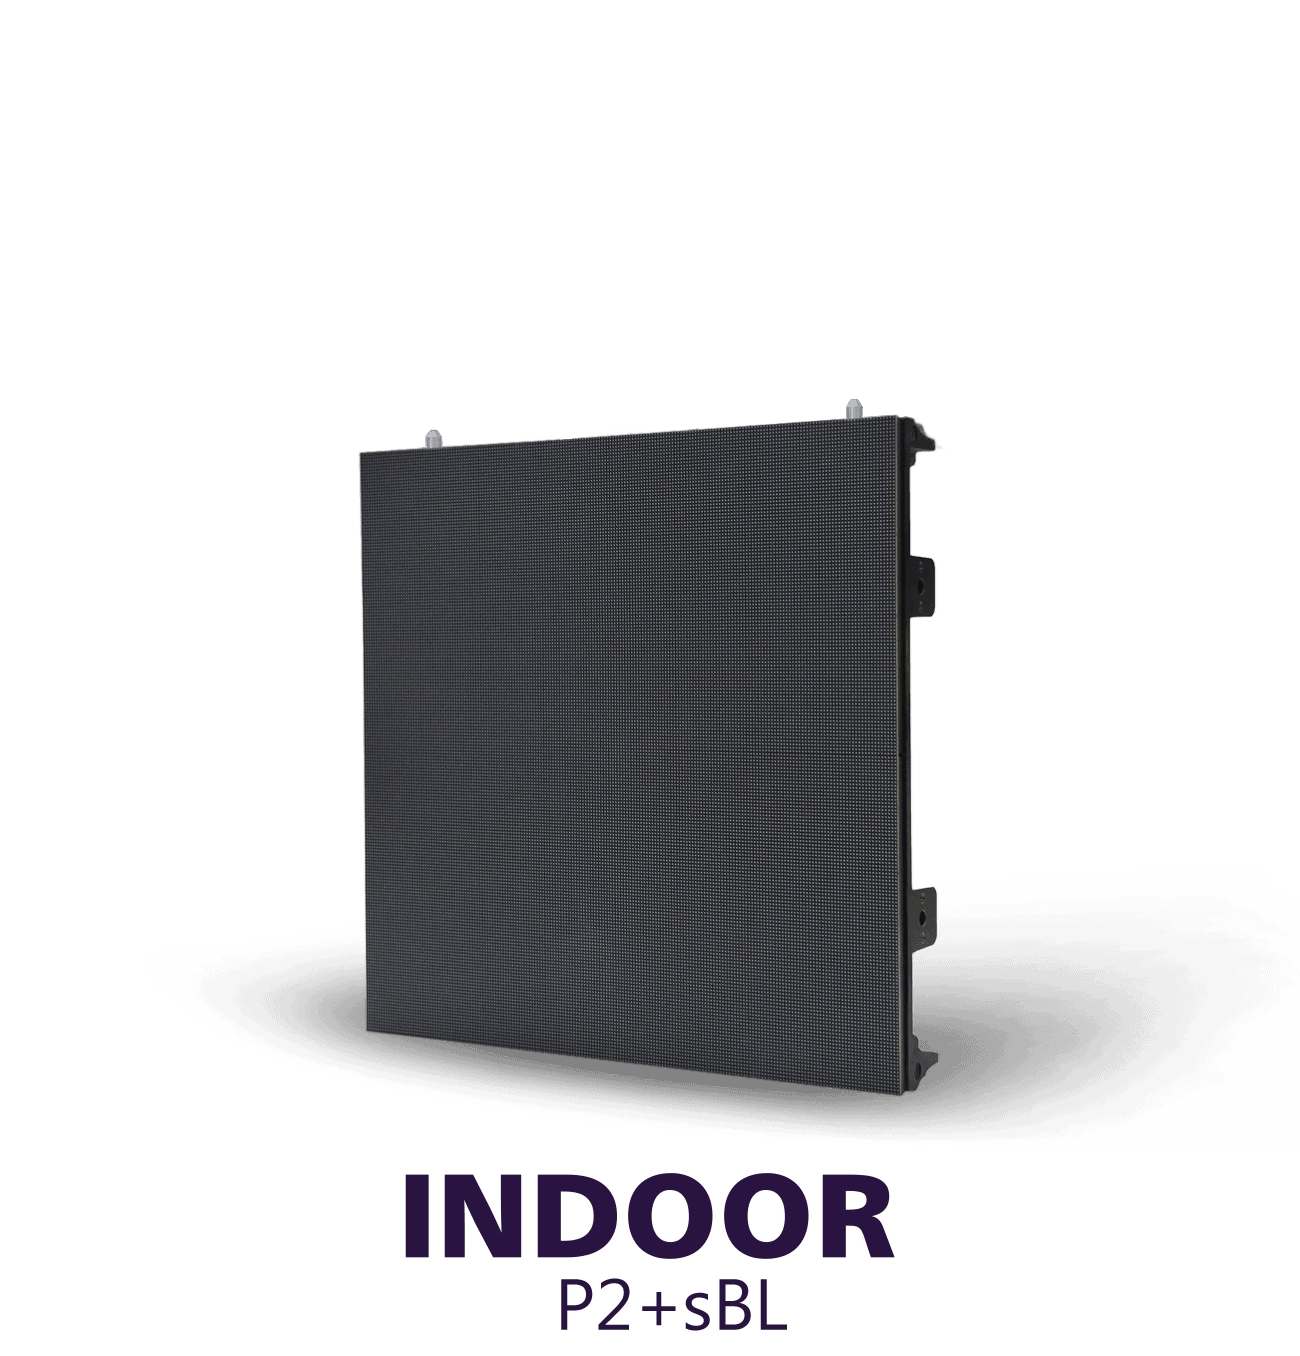 Indoor Wall over